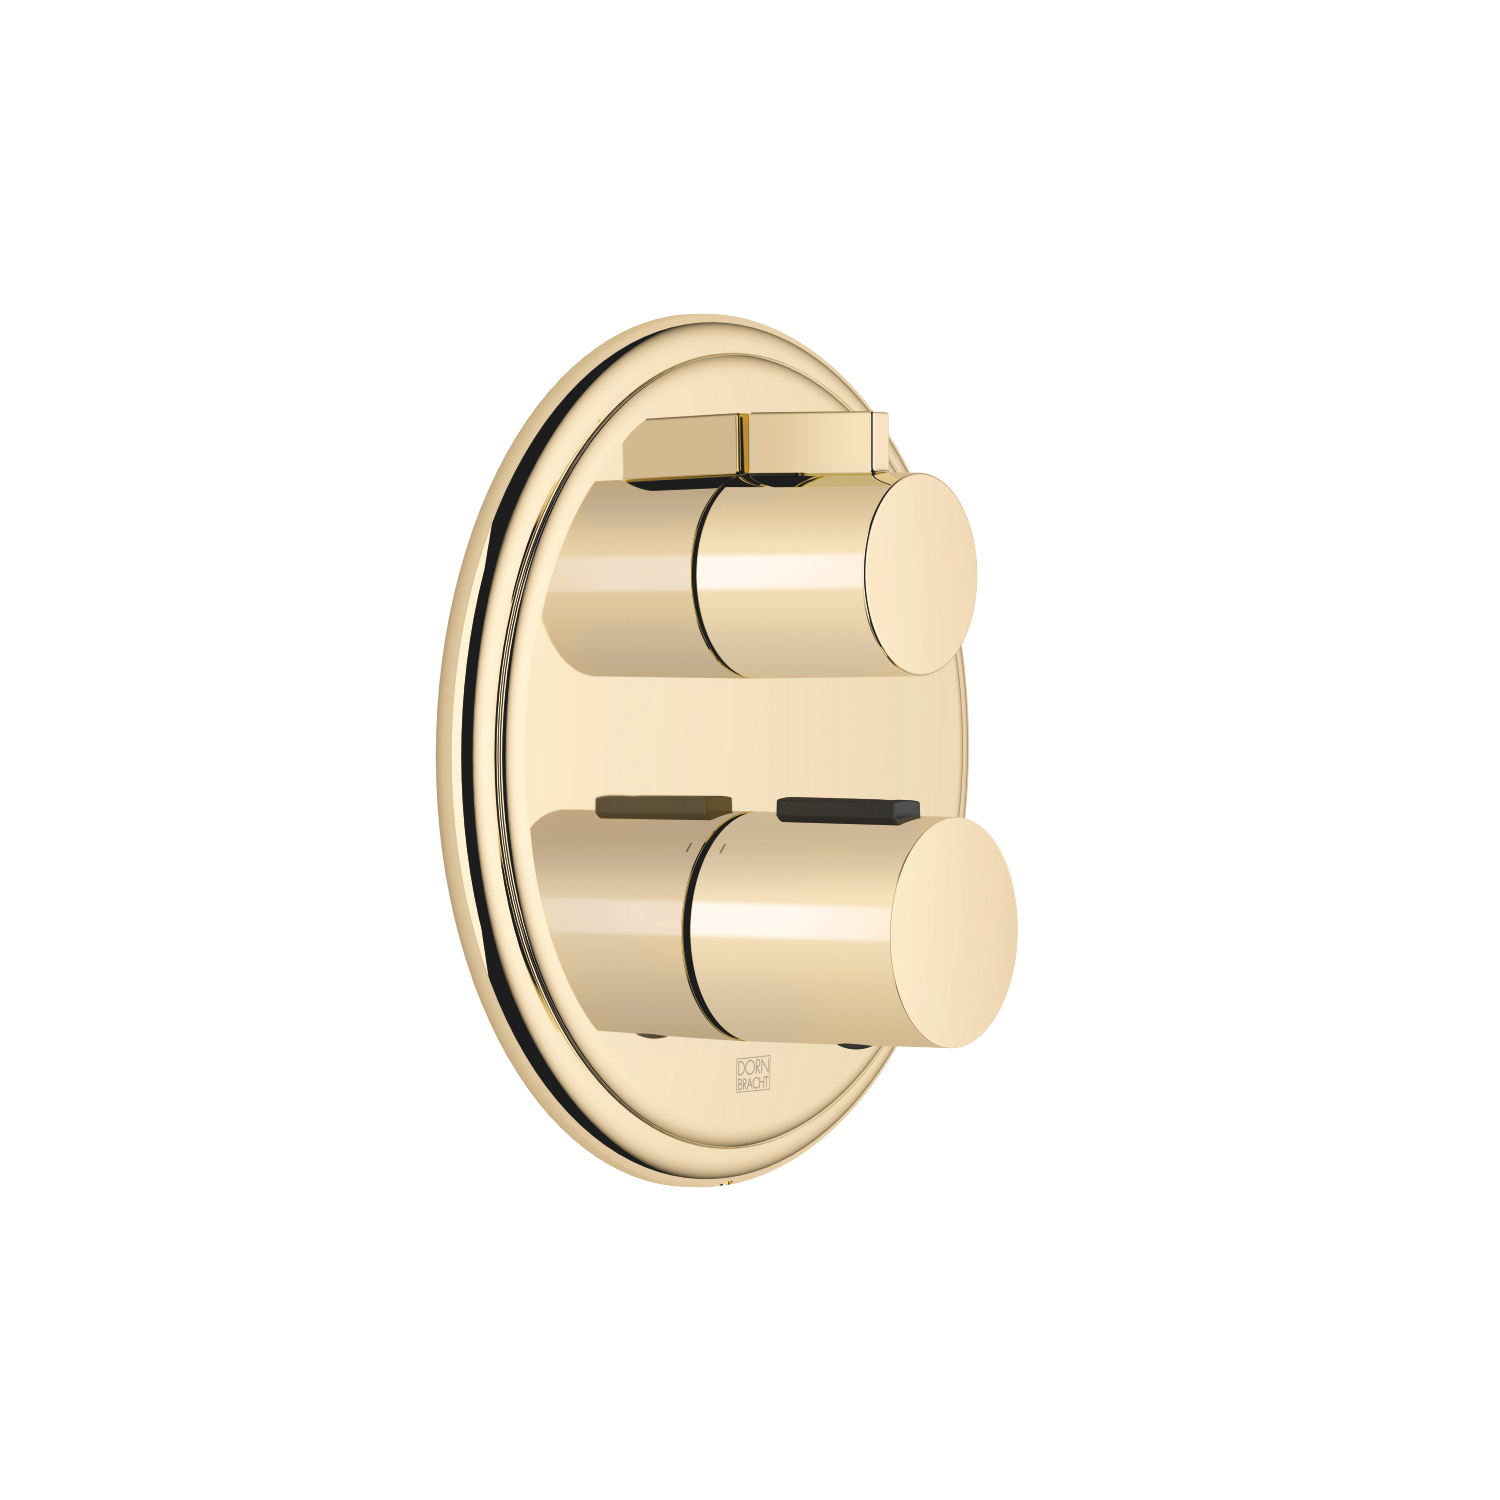 Concealed thermostat with one function volume control - Durabrass